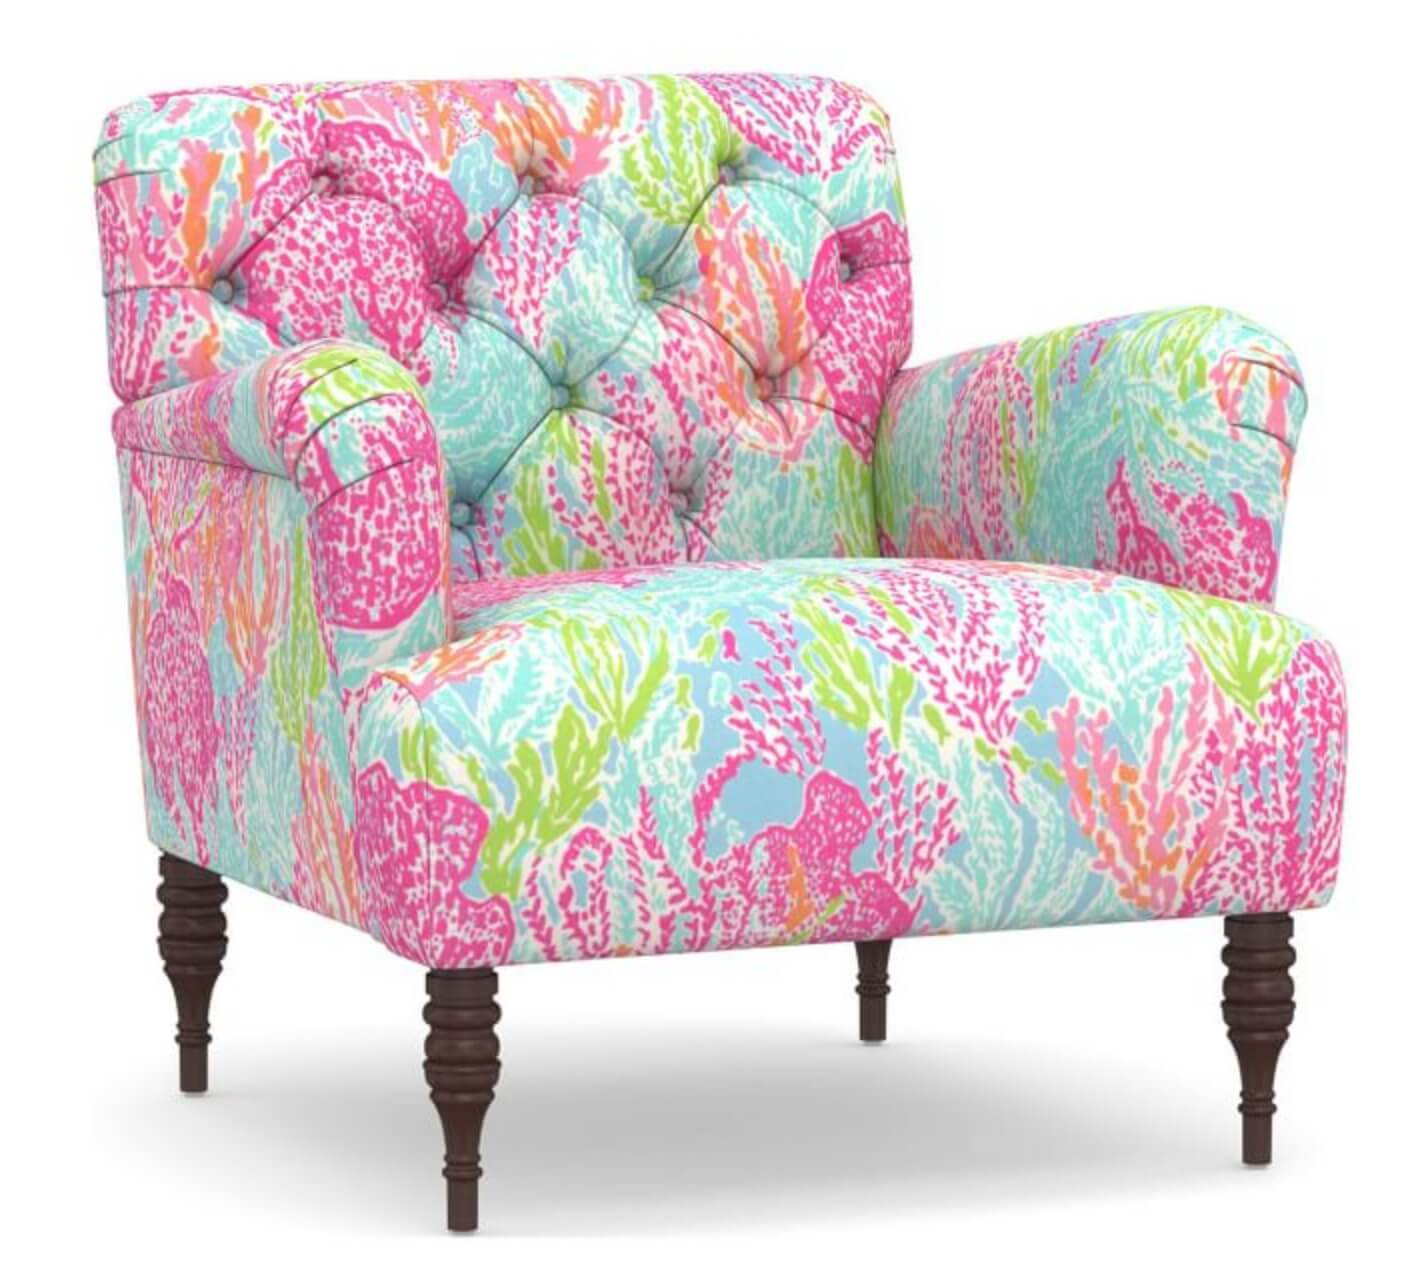 Lilly Pulitzer glam chair